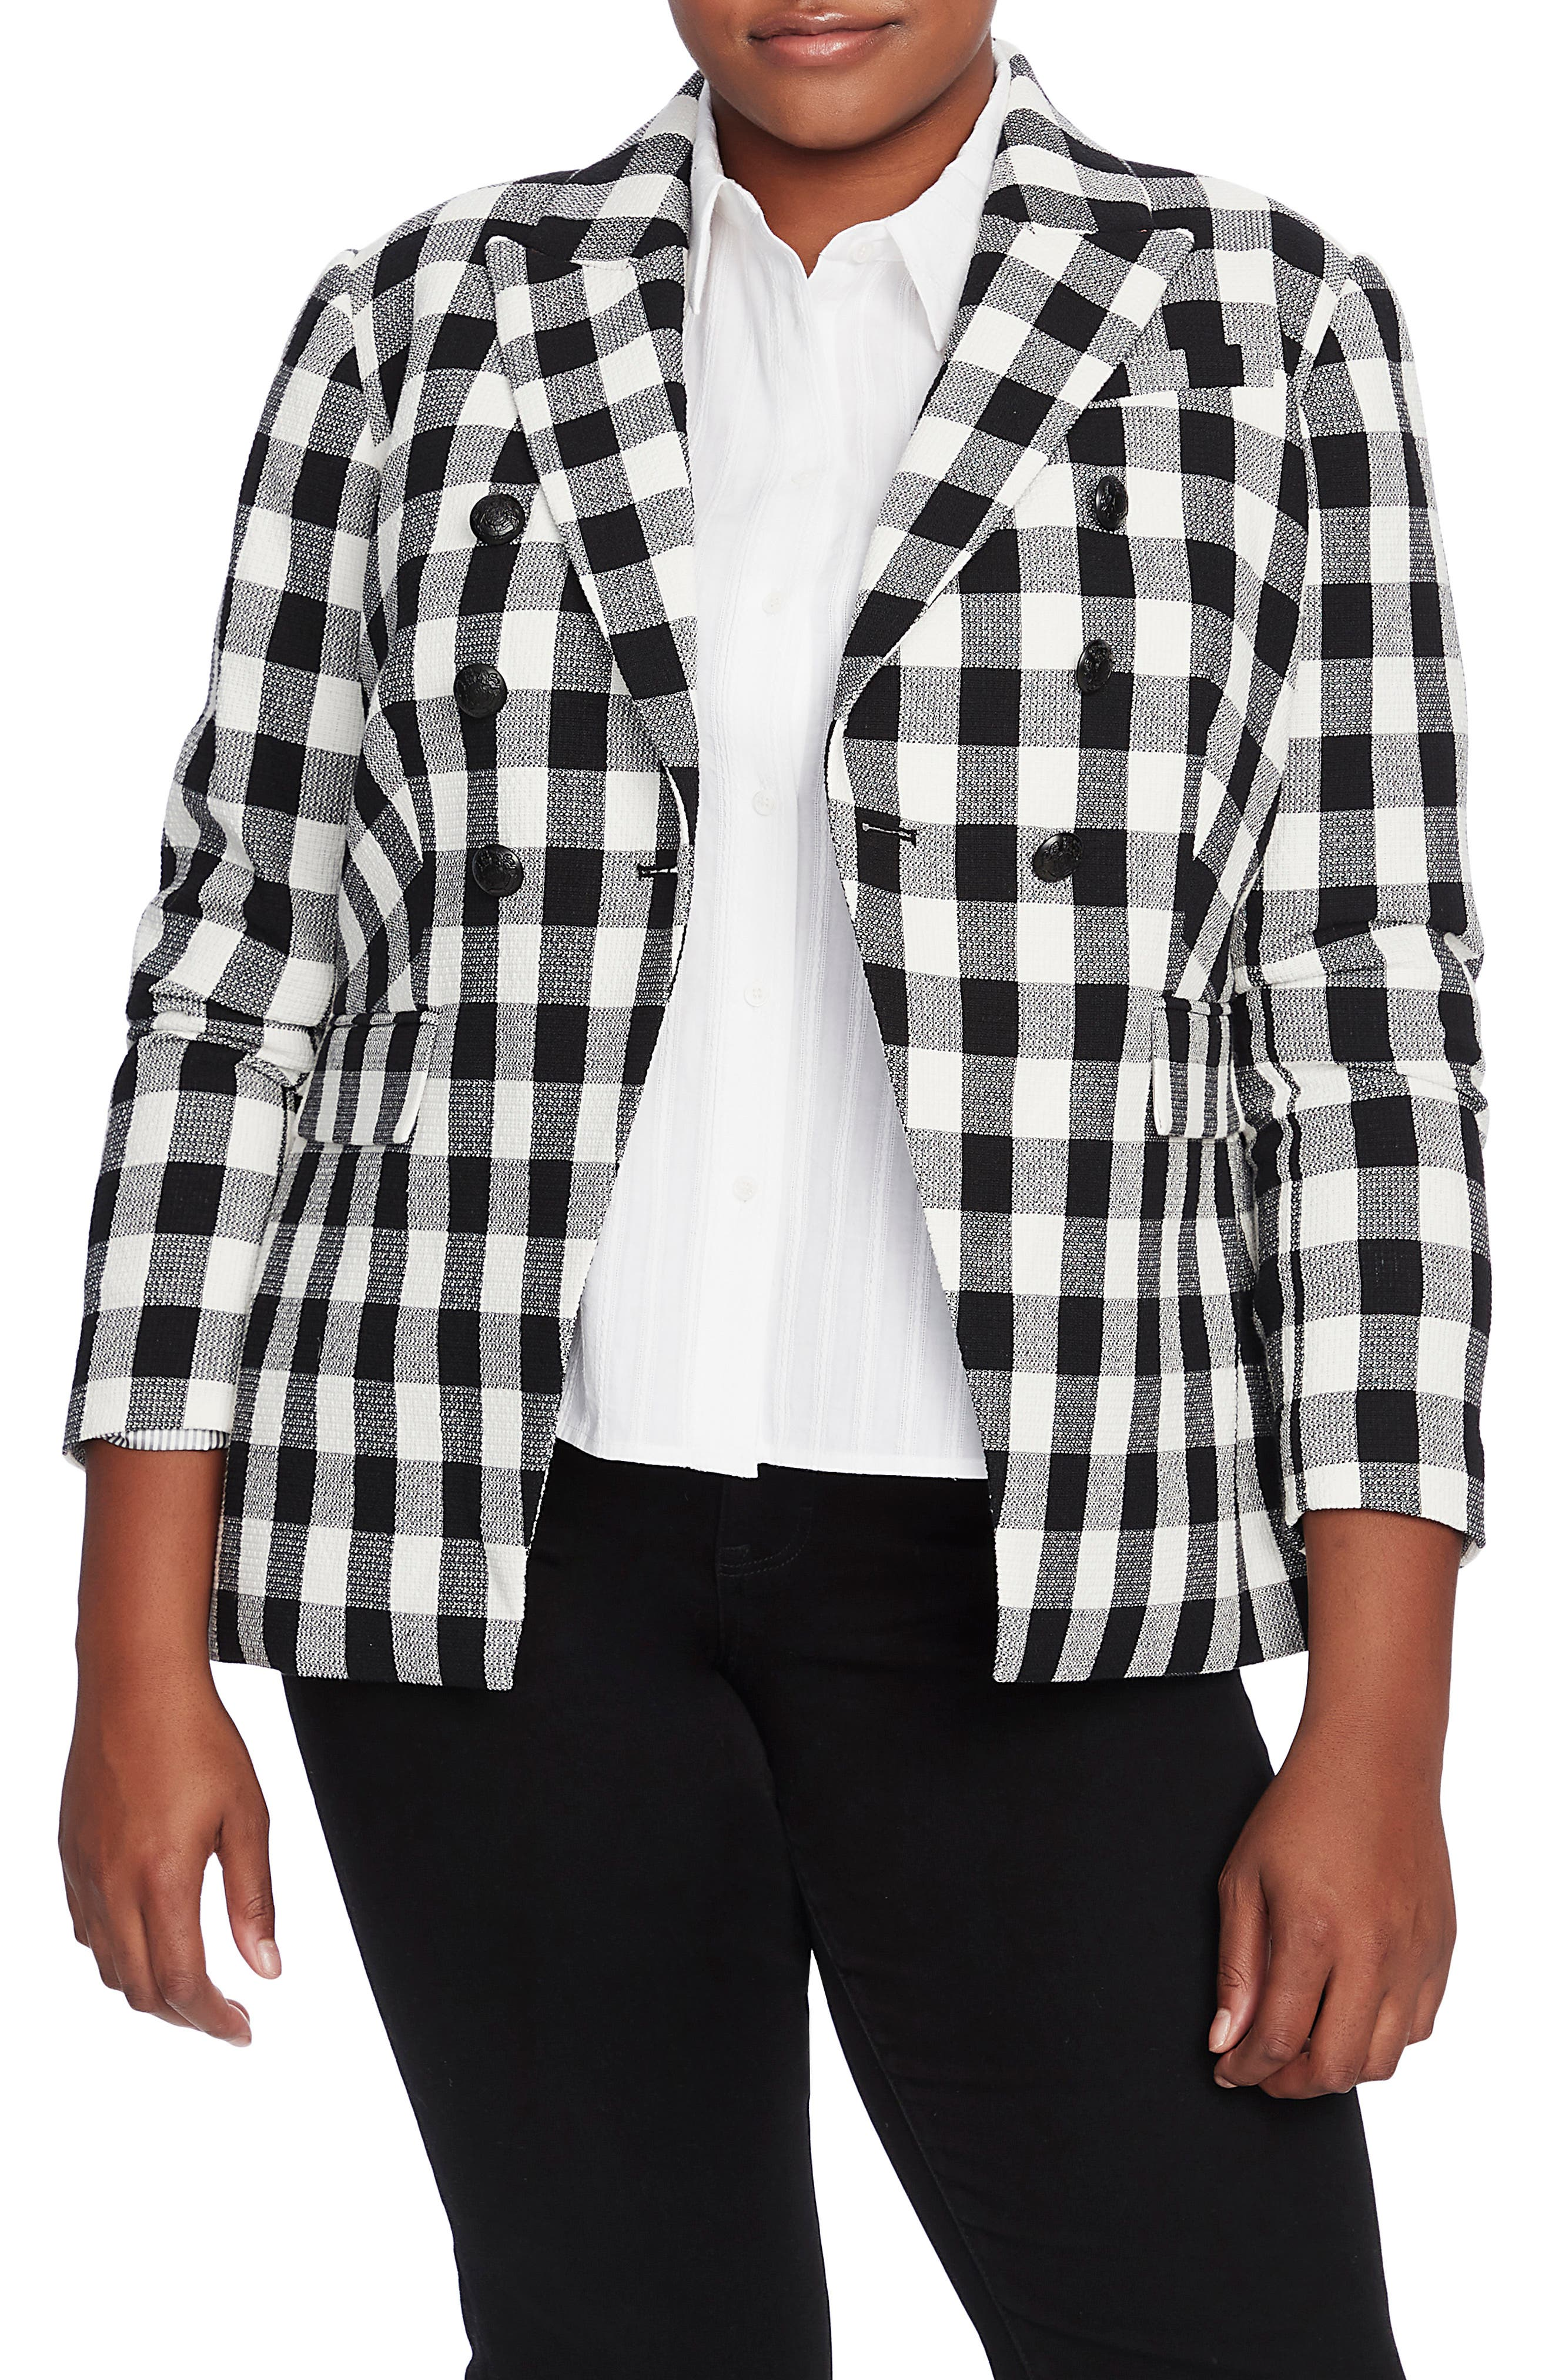 Image of COURT AND ROWE texture gingham dbl breasted b